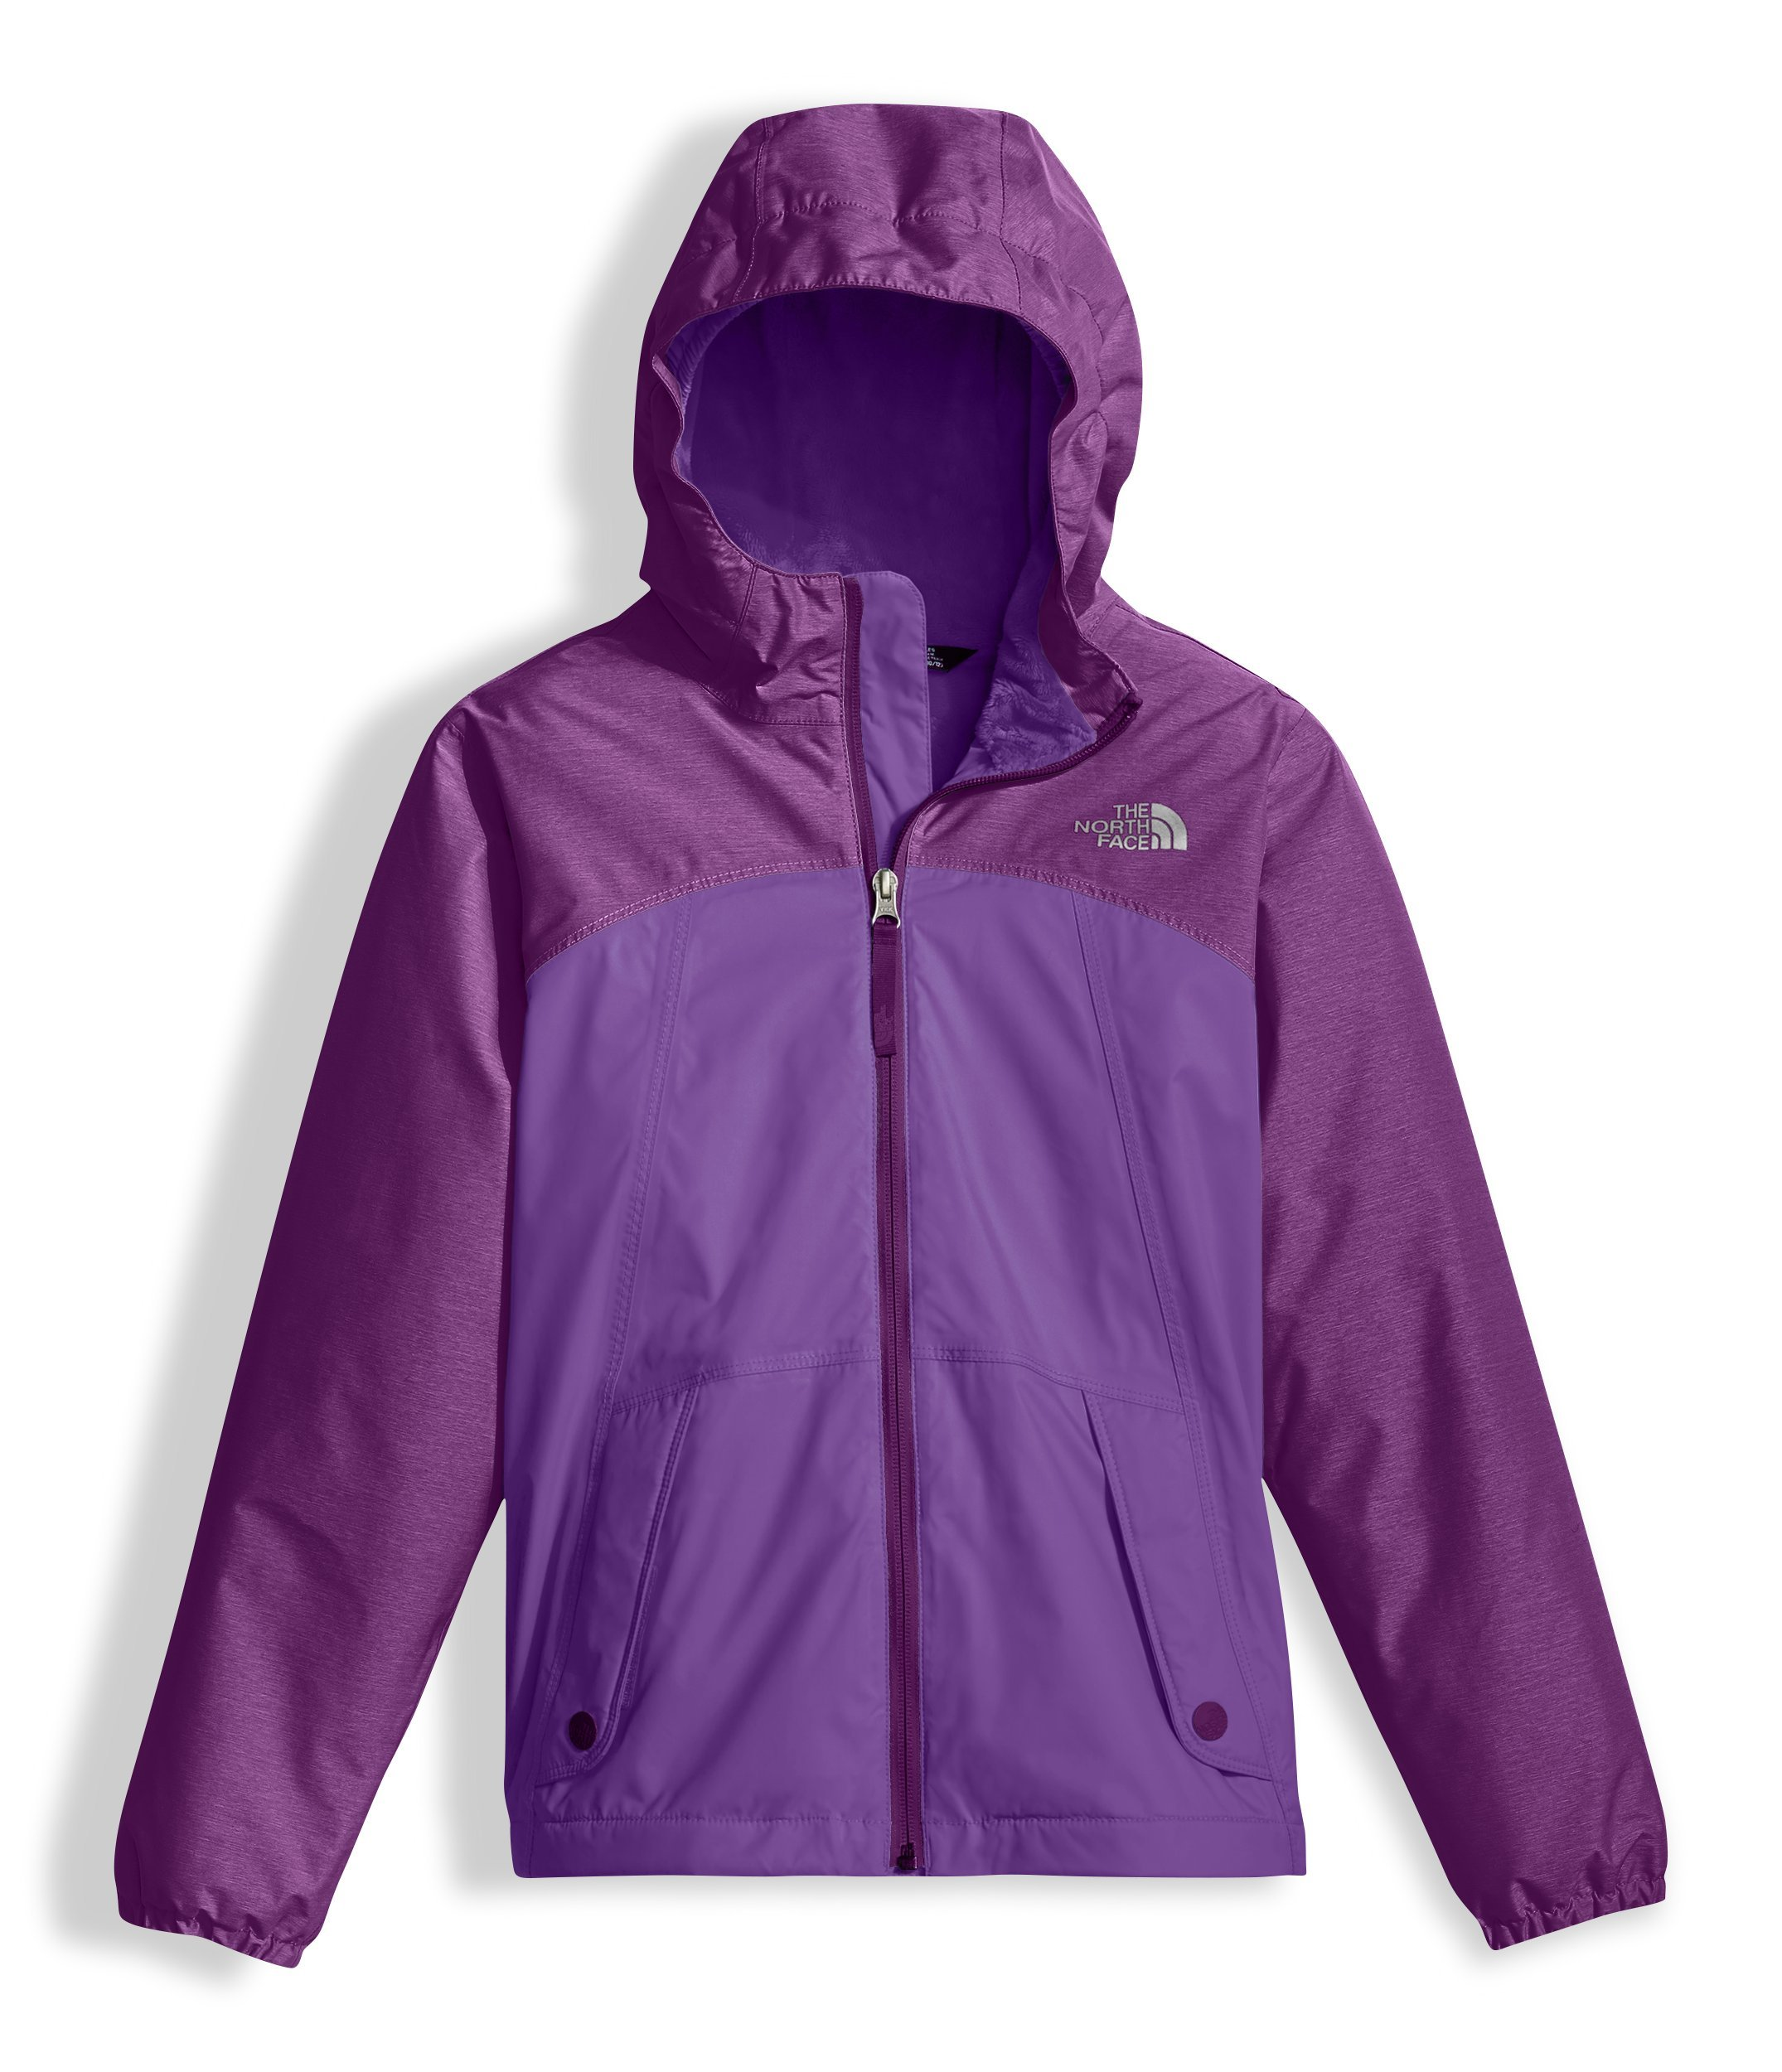 The North Face Girl's Warm Storm Jacket - Bellflower Purple - M (Past Season)